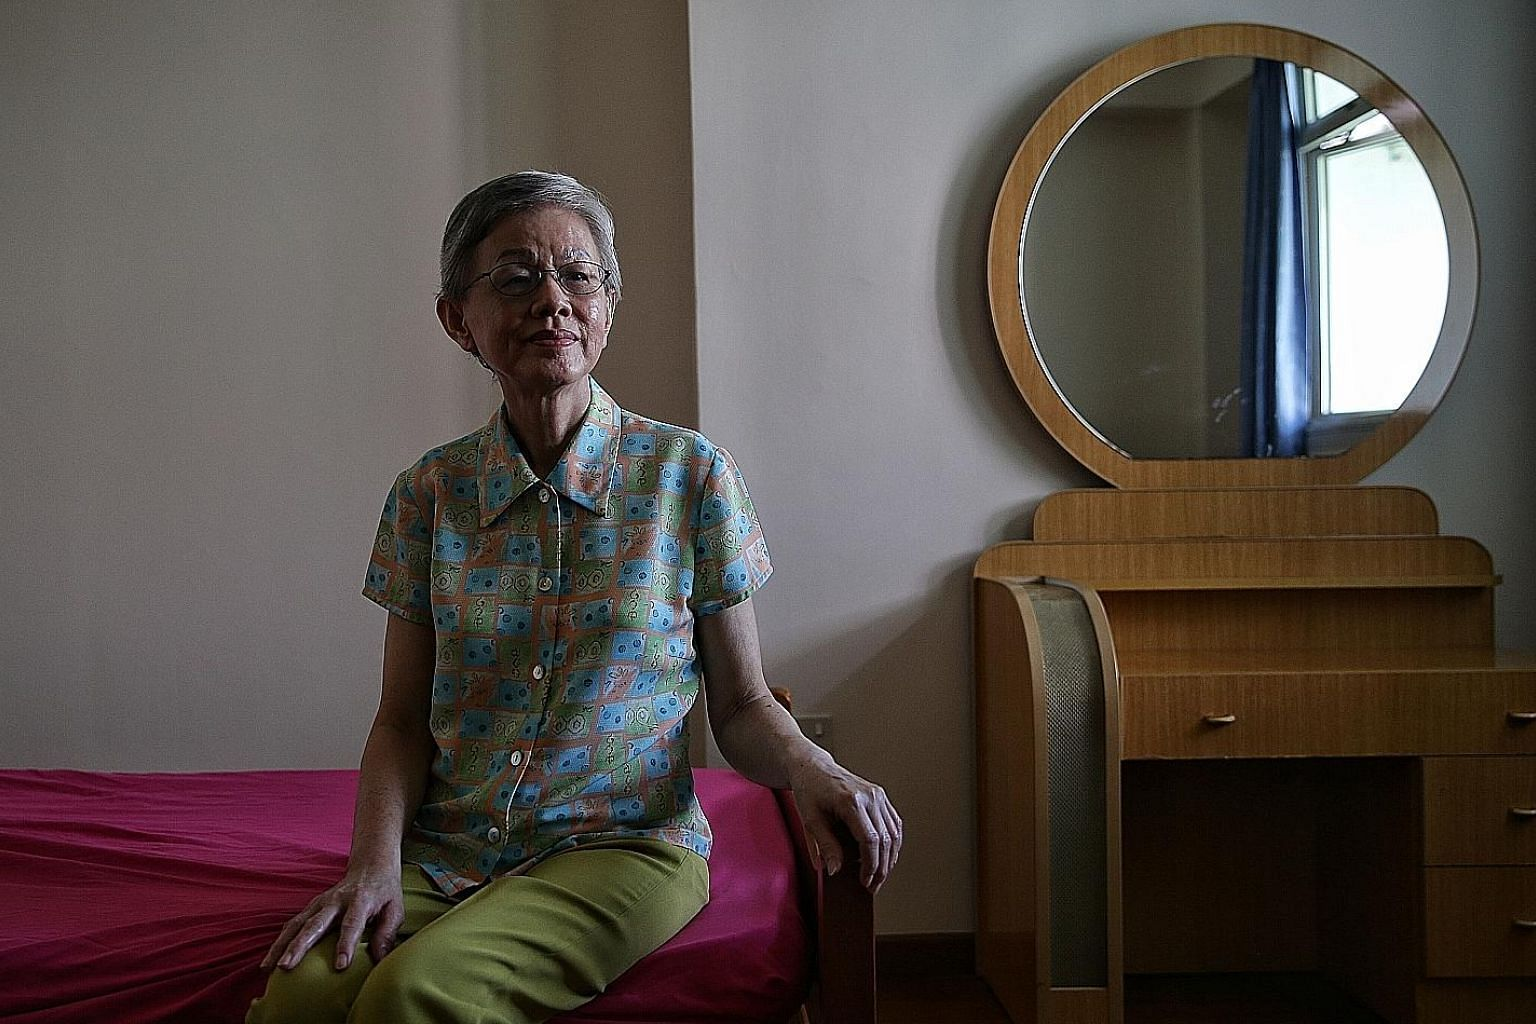 Ms Stephanie Kong was asked to pay a deposit of more than $19,000 to be moved from Singapore General Hospital to Sengkang Community Hospital. ST PHOTO: KEVIN LIM